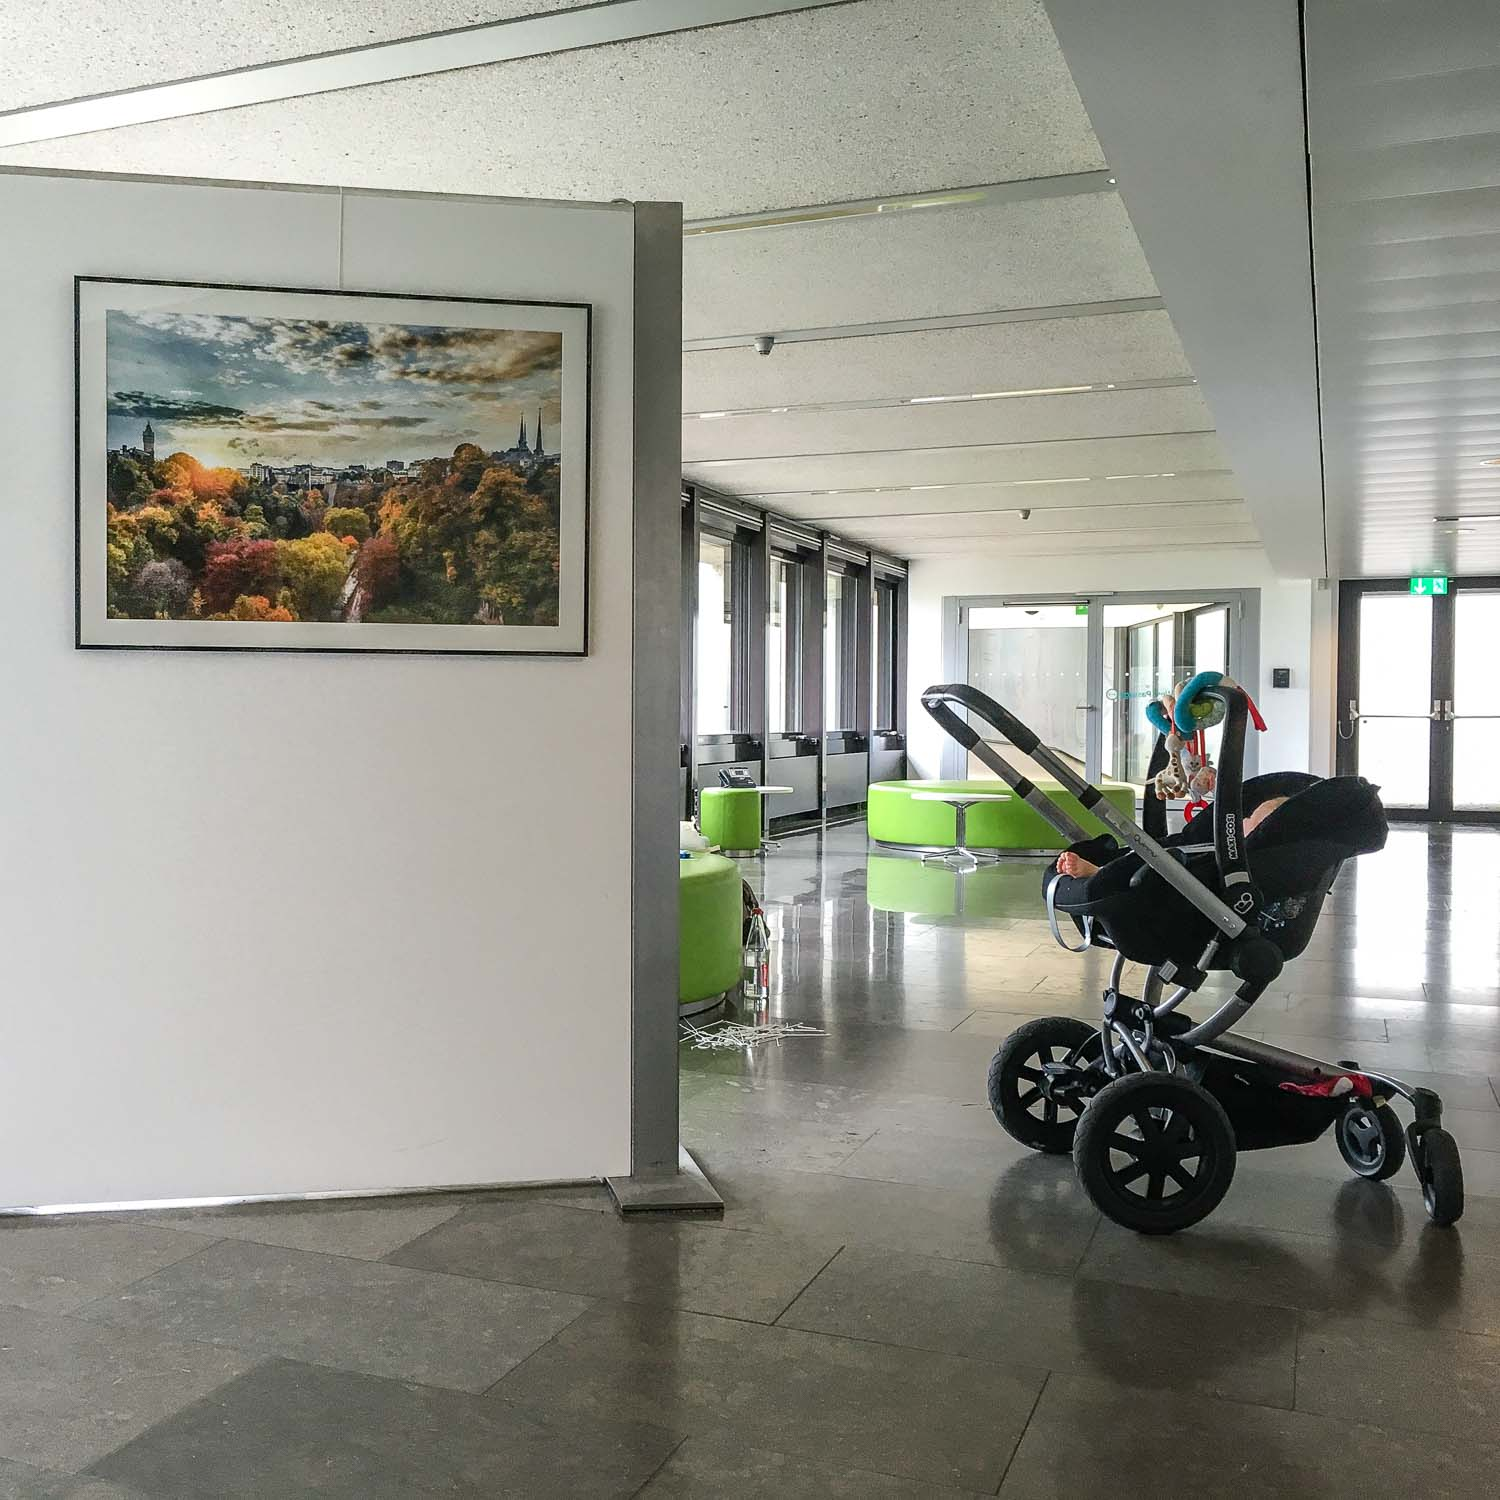 My Luxembourg photography exhibition by Christophe Van Biesen at the European Investment Bank in Luxembourg City